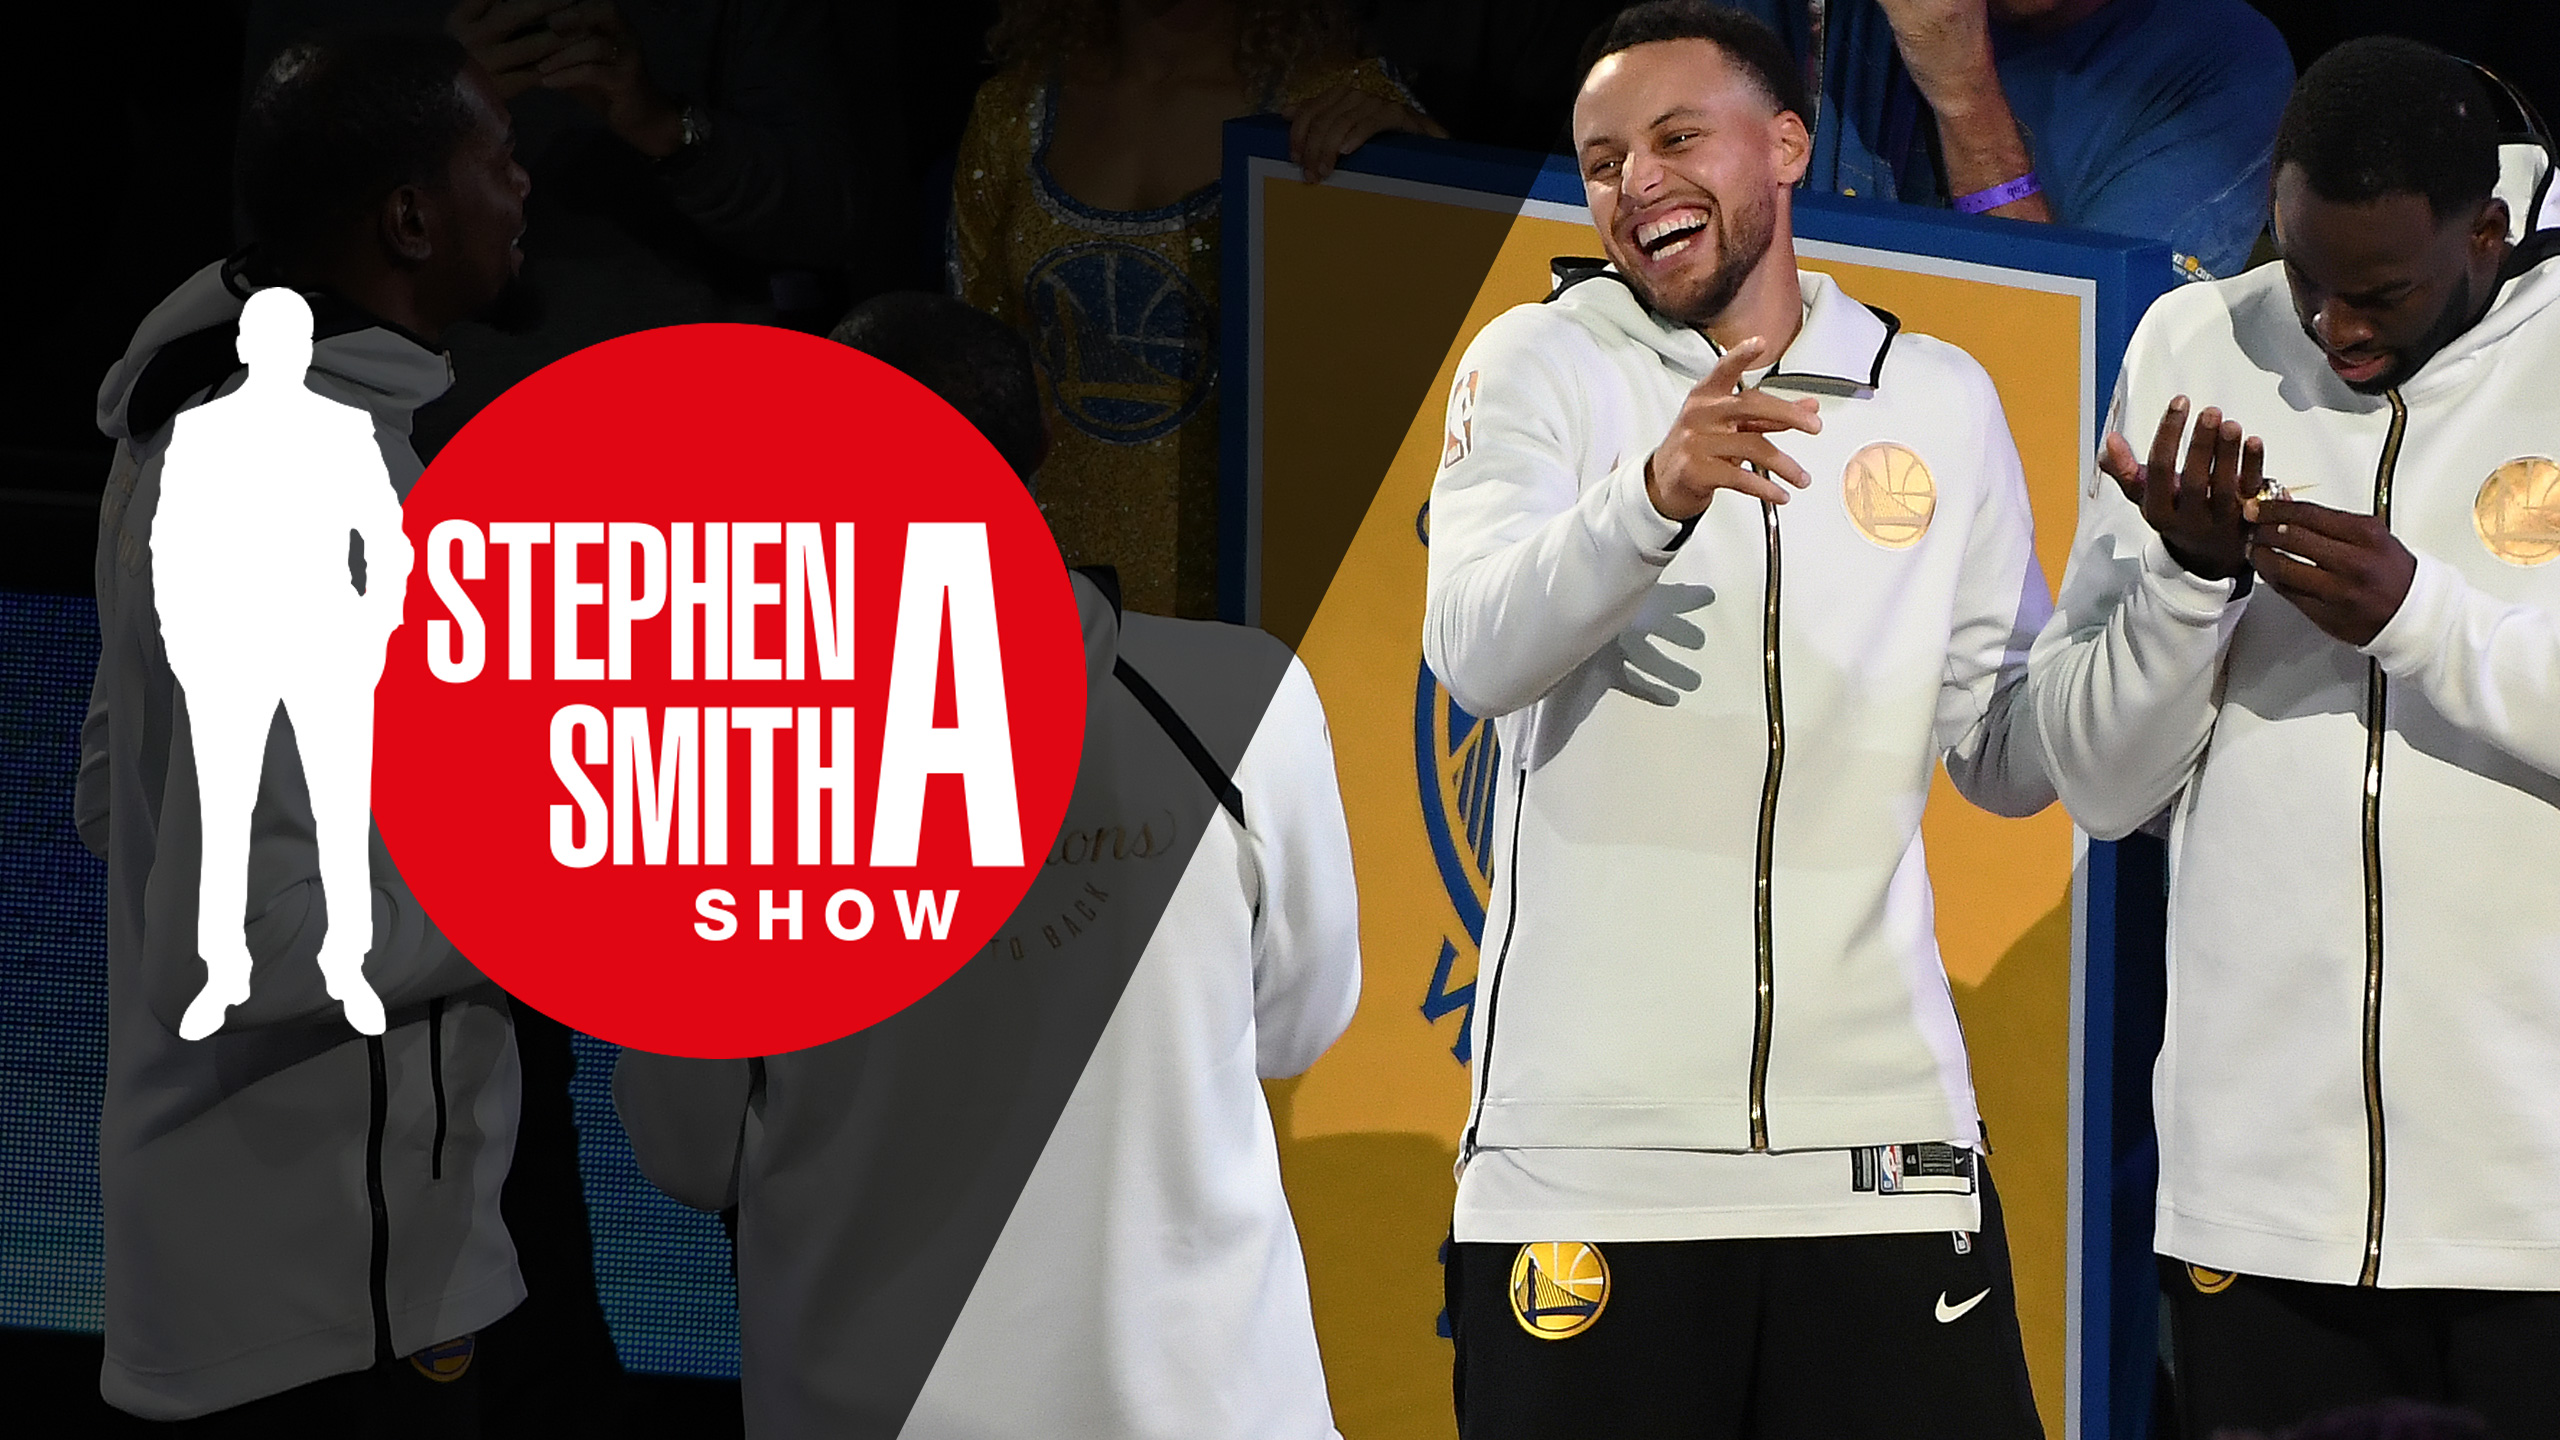 Wed, 10/17 - The Stephen A. Smith Show